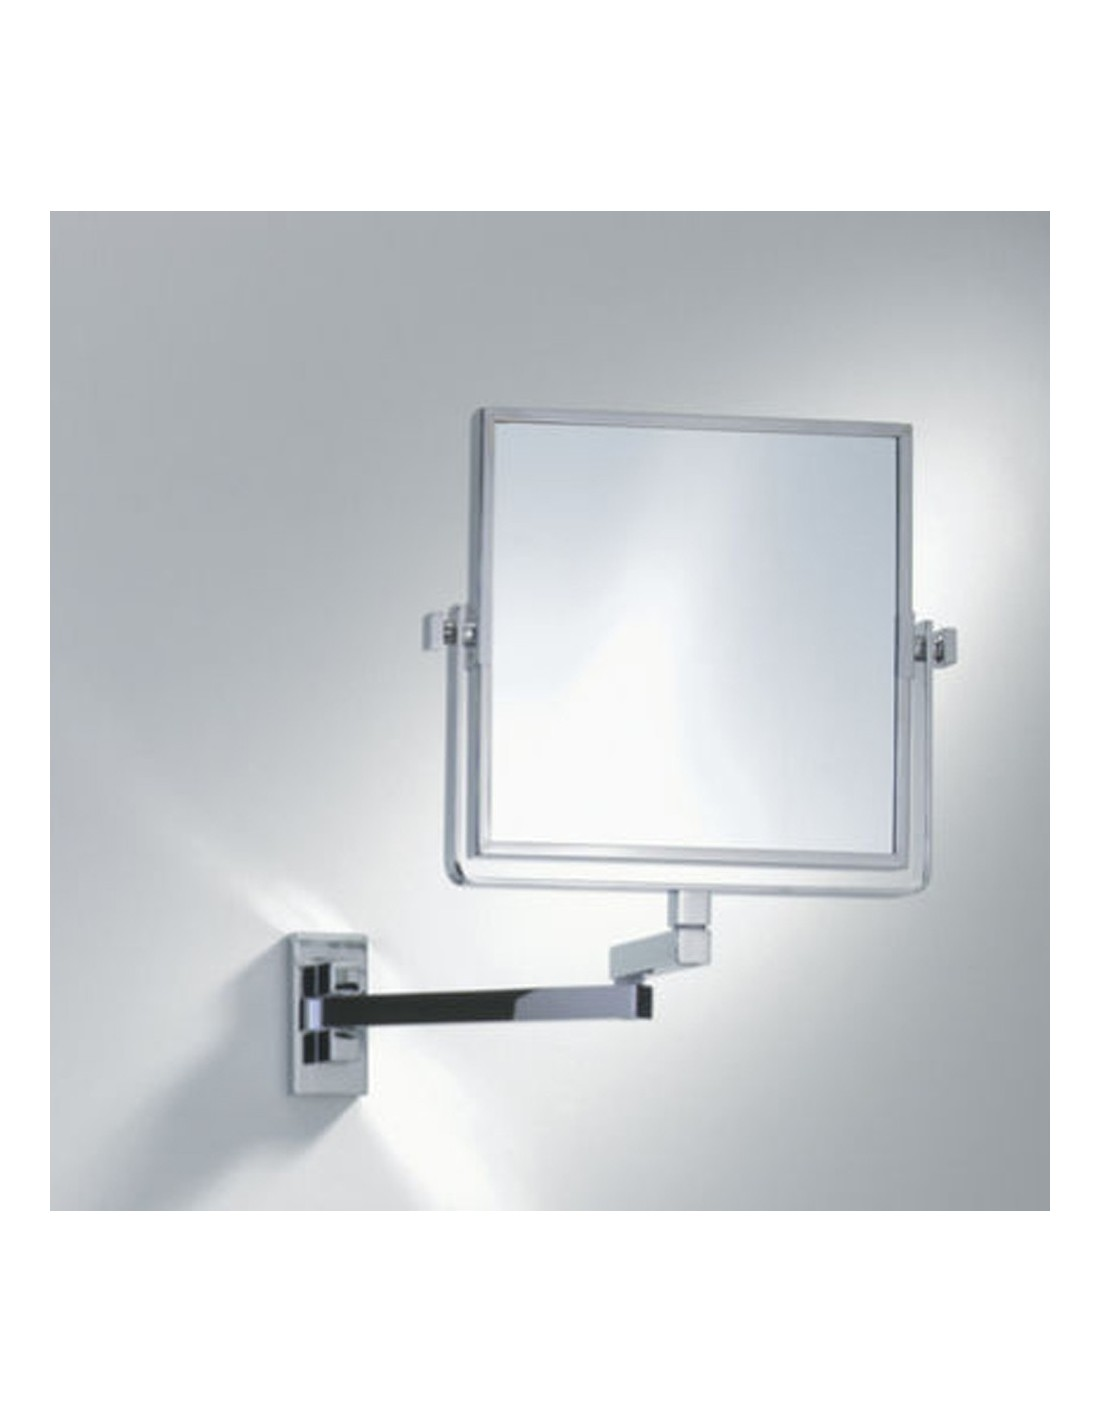 Miroir grossissant carr for Miroir grossissant lumineux